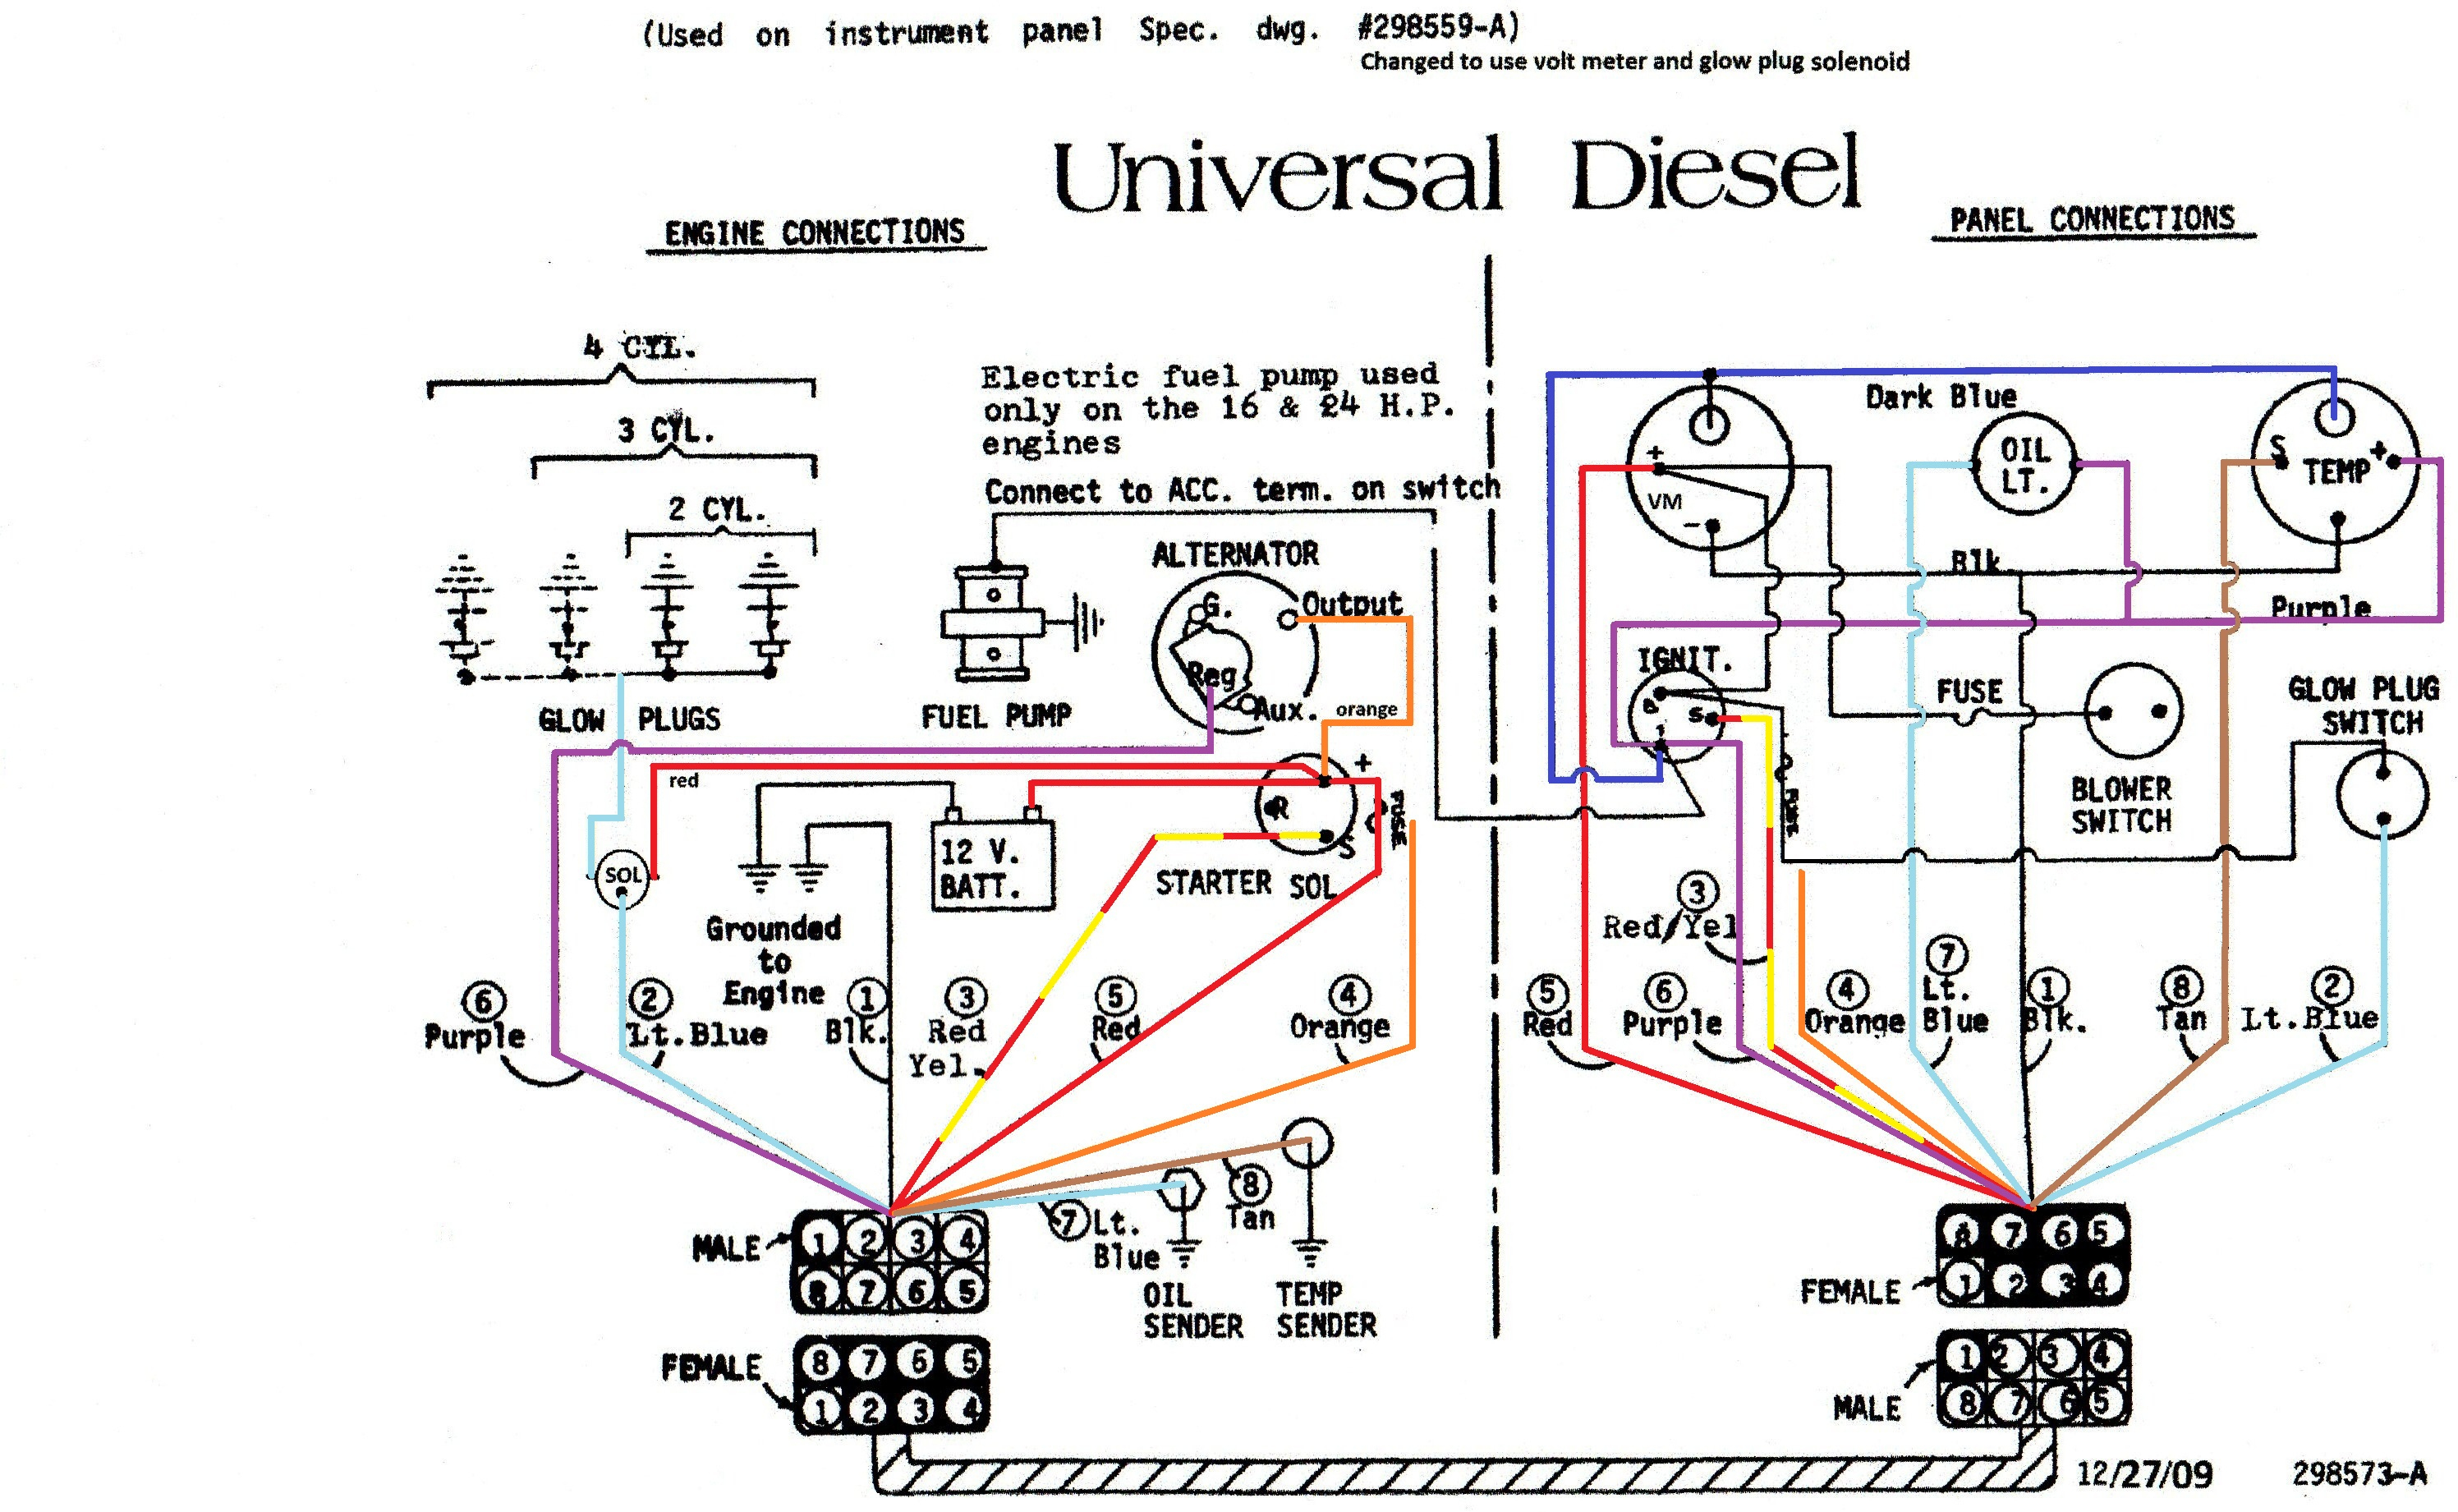 Wire Harness Diagram - Wiring Diagrams Hubs - Wiring Harness Diagram